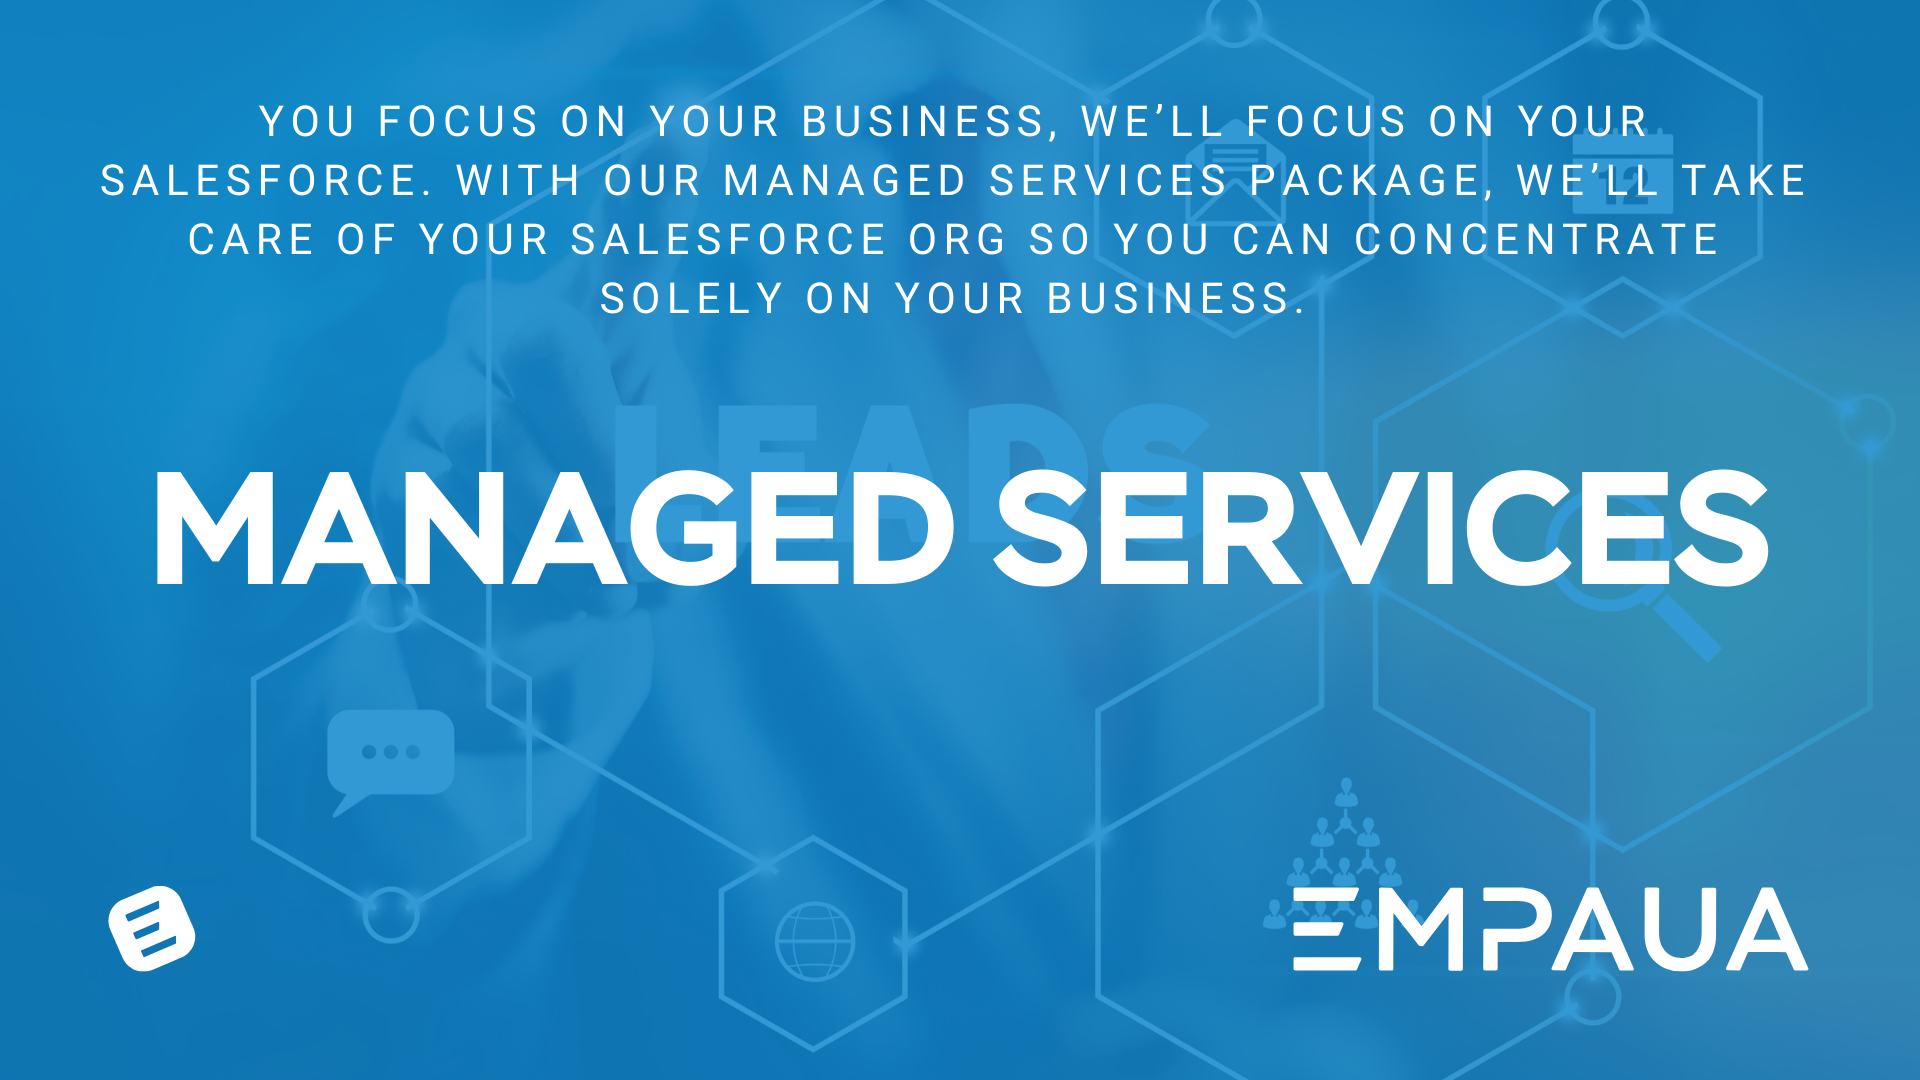 EMPAUA Salesforce solutions and implementations